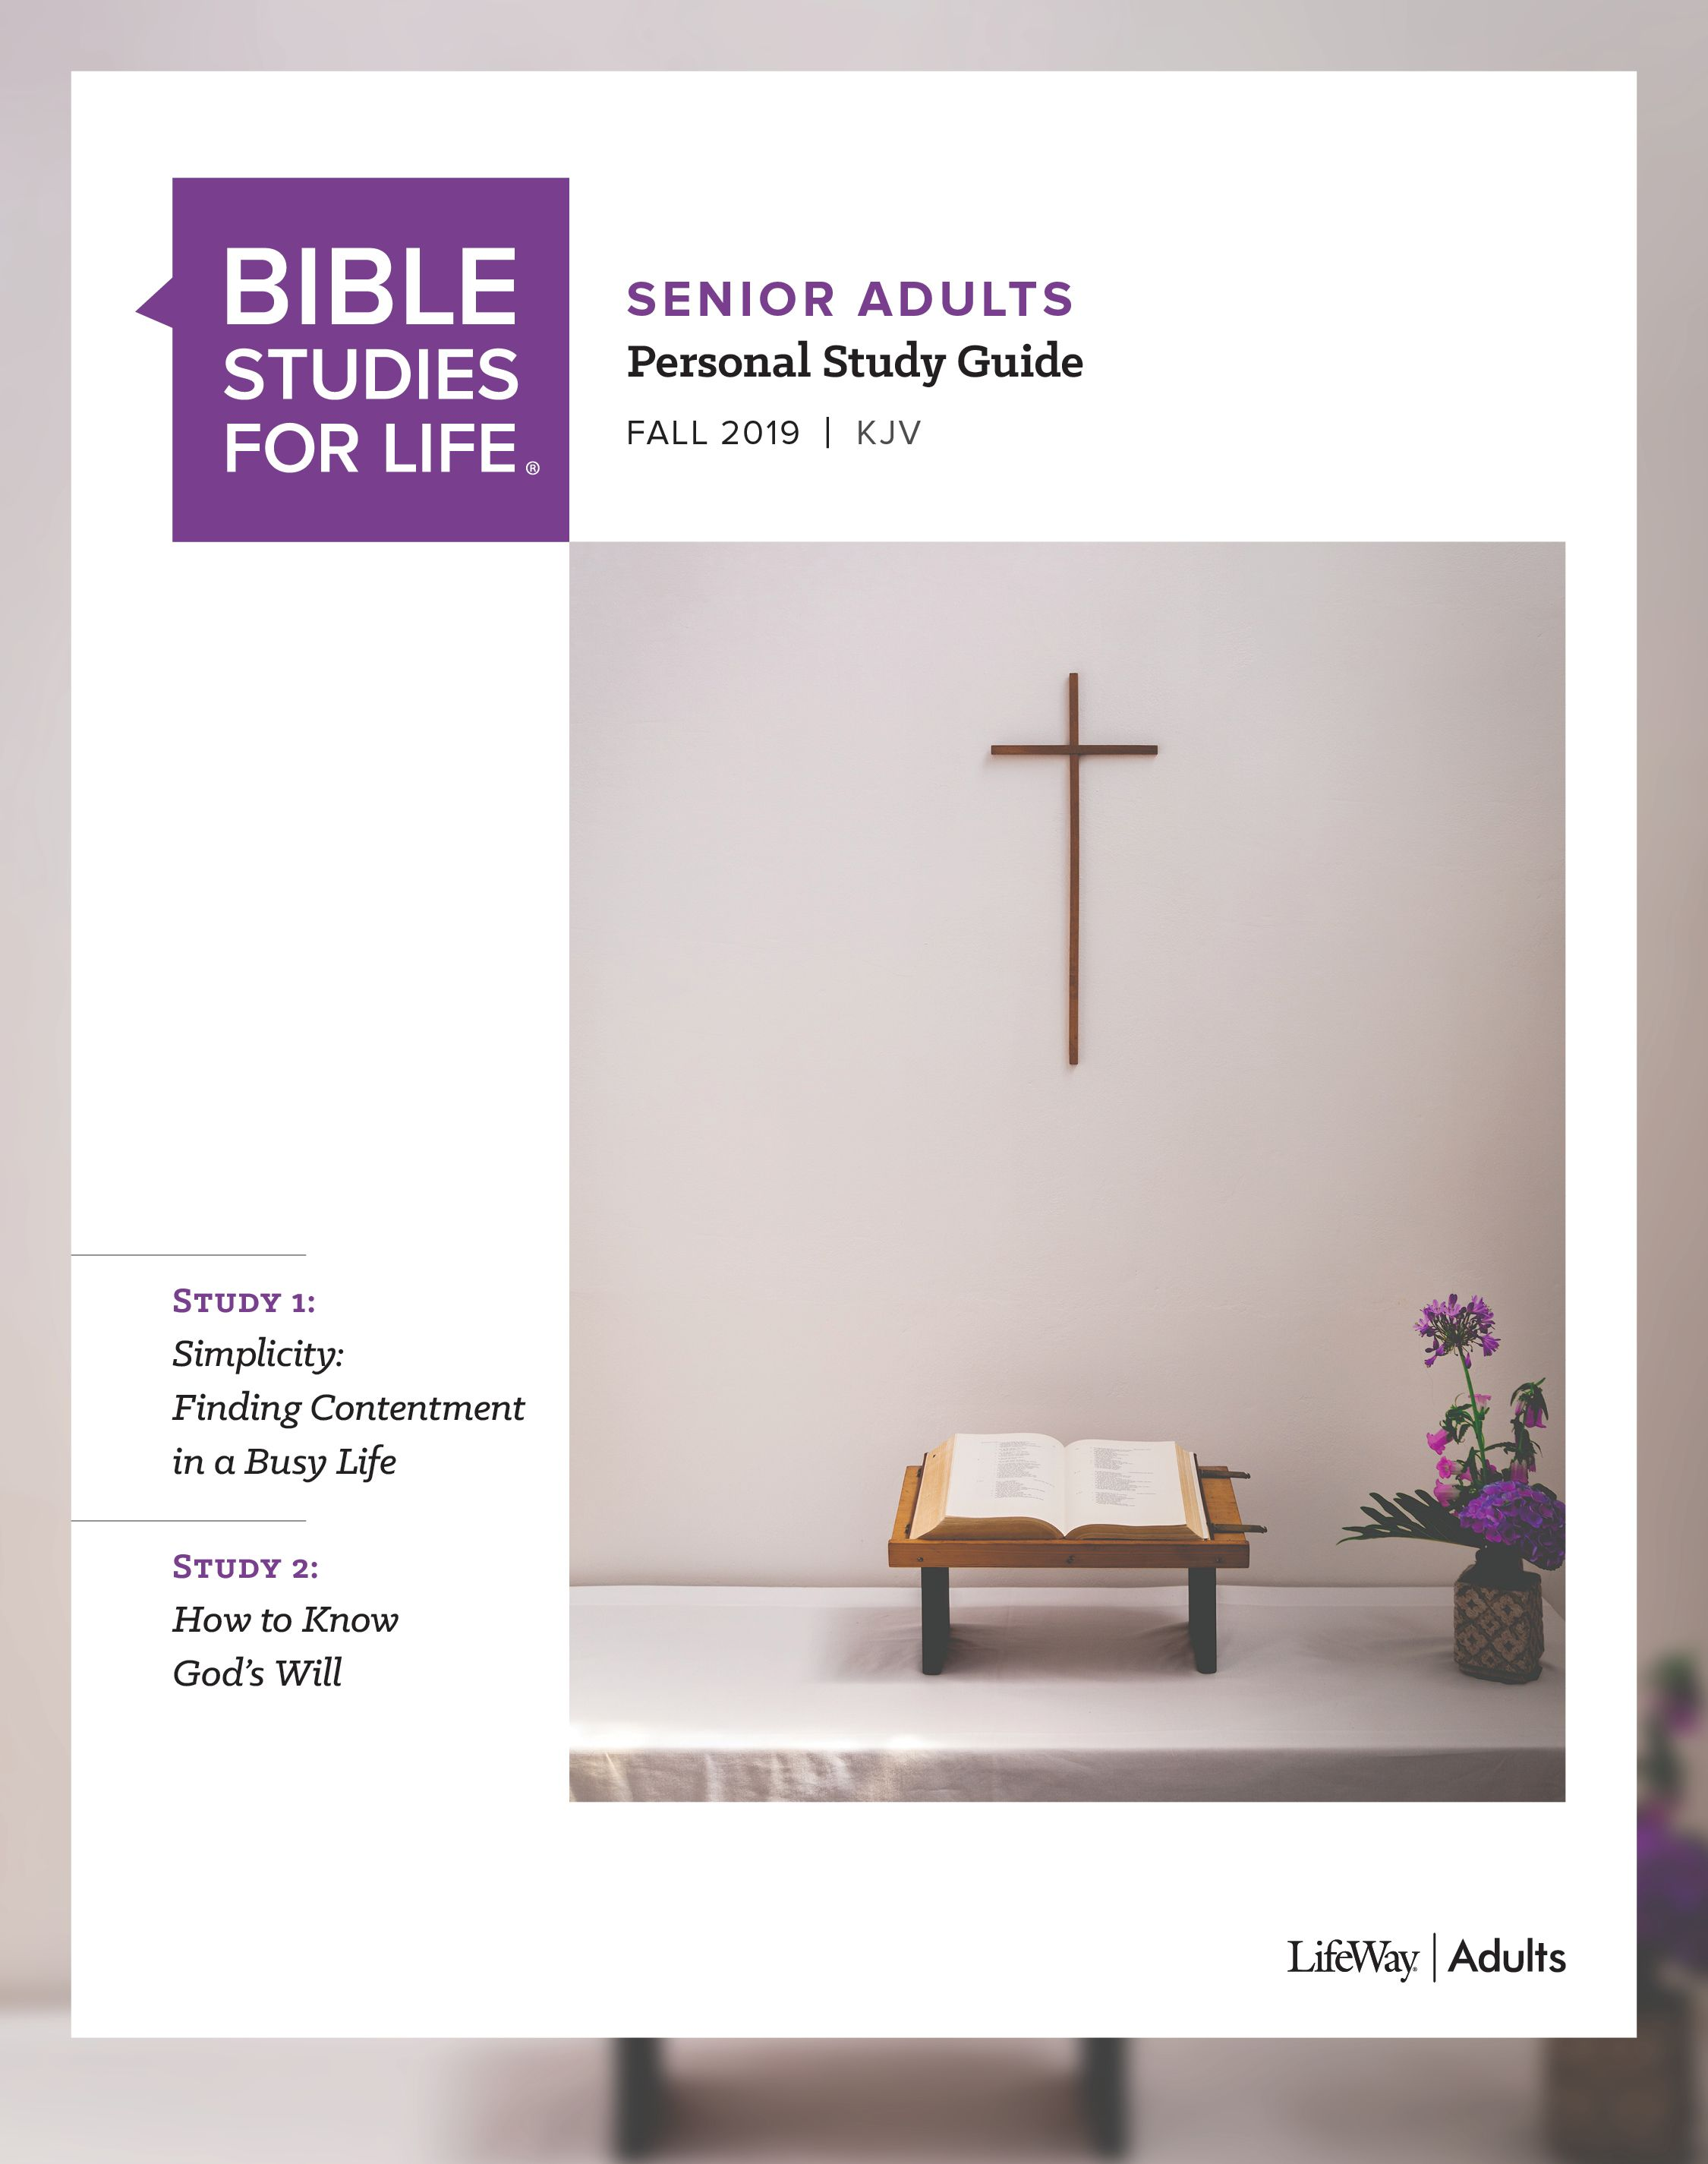 Bible Studies for Life | Adults - KJV Products - LifeWay